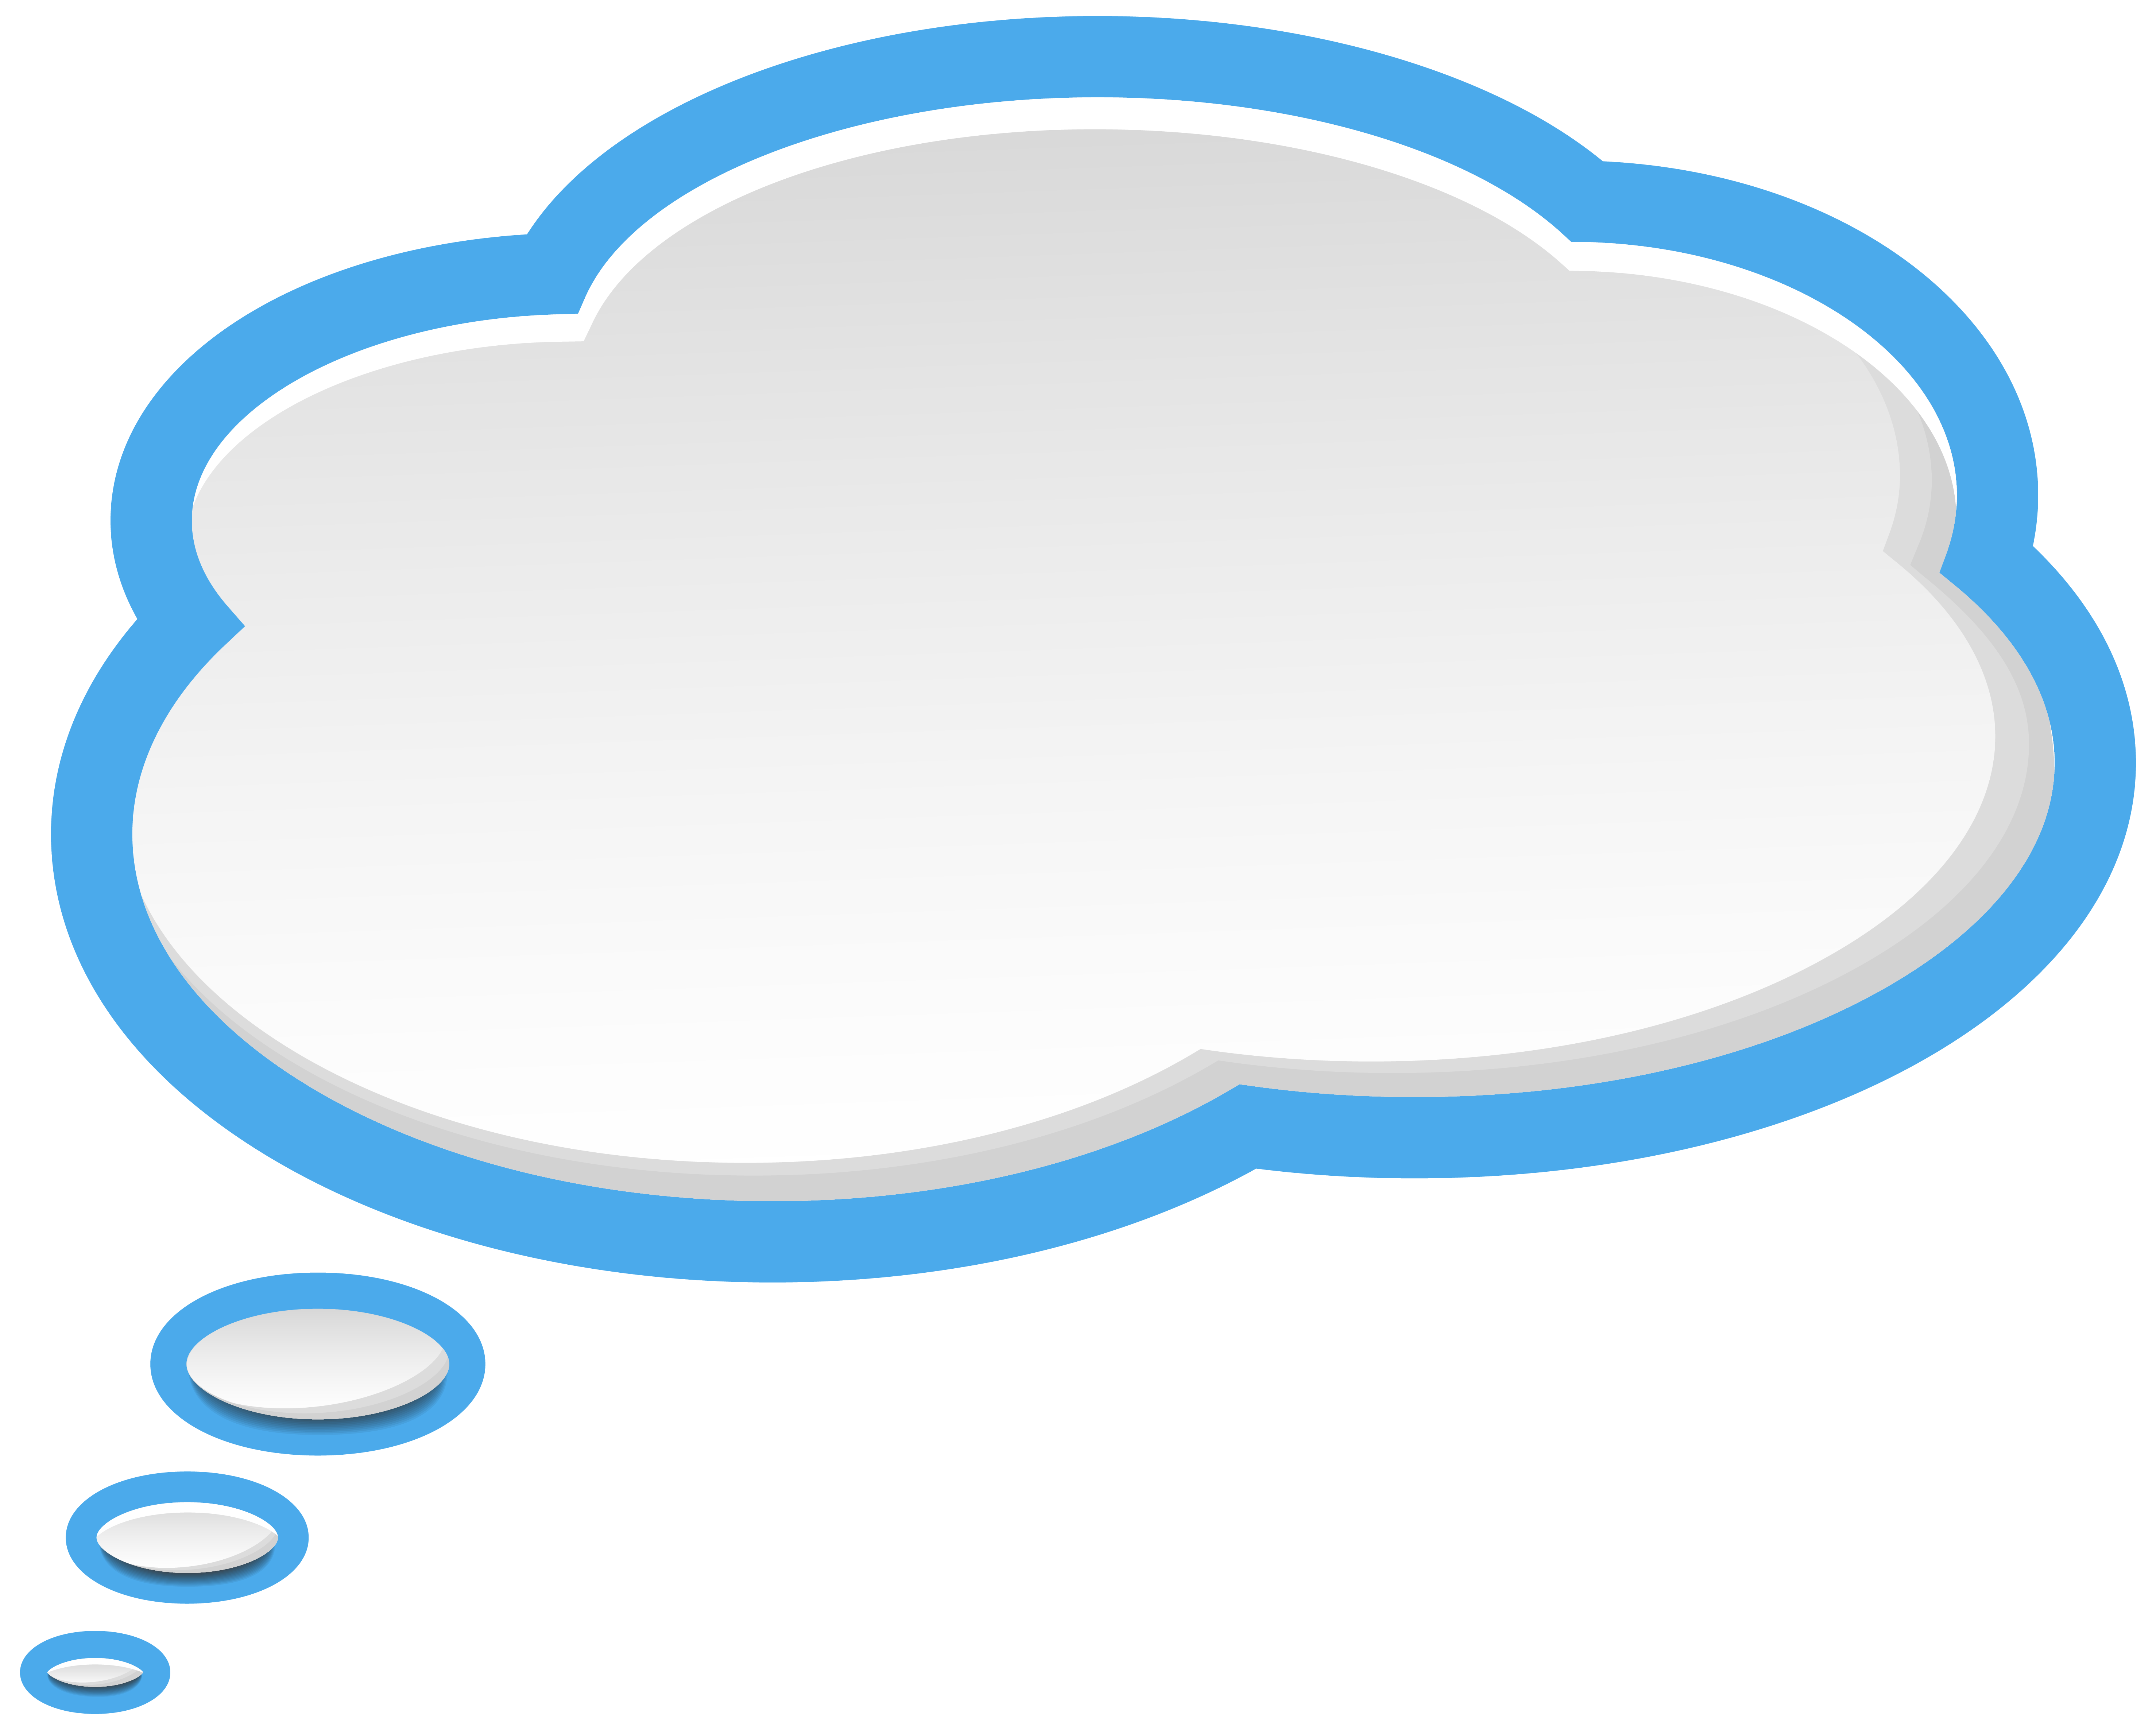 Bubble speech blue white. Water clipart sky